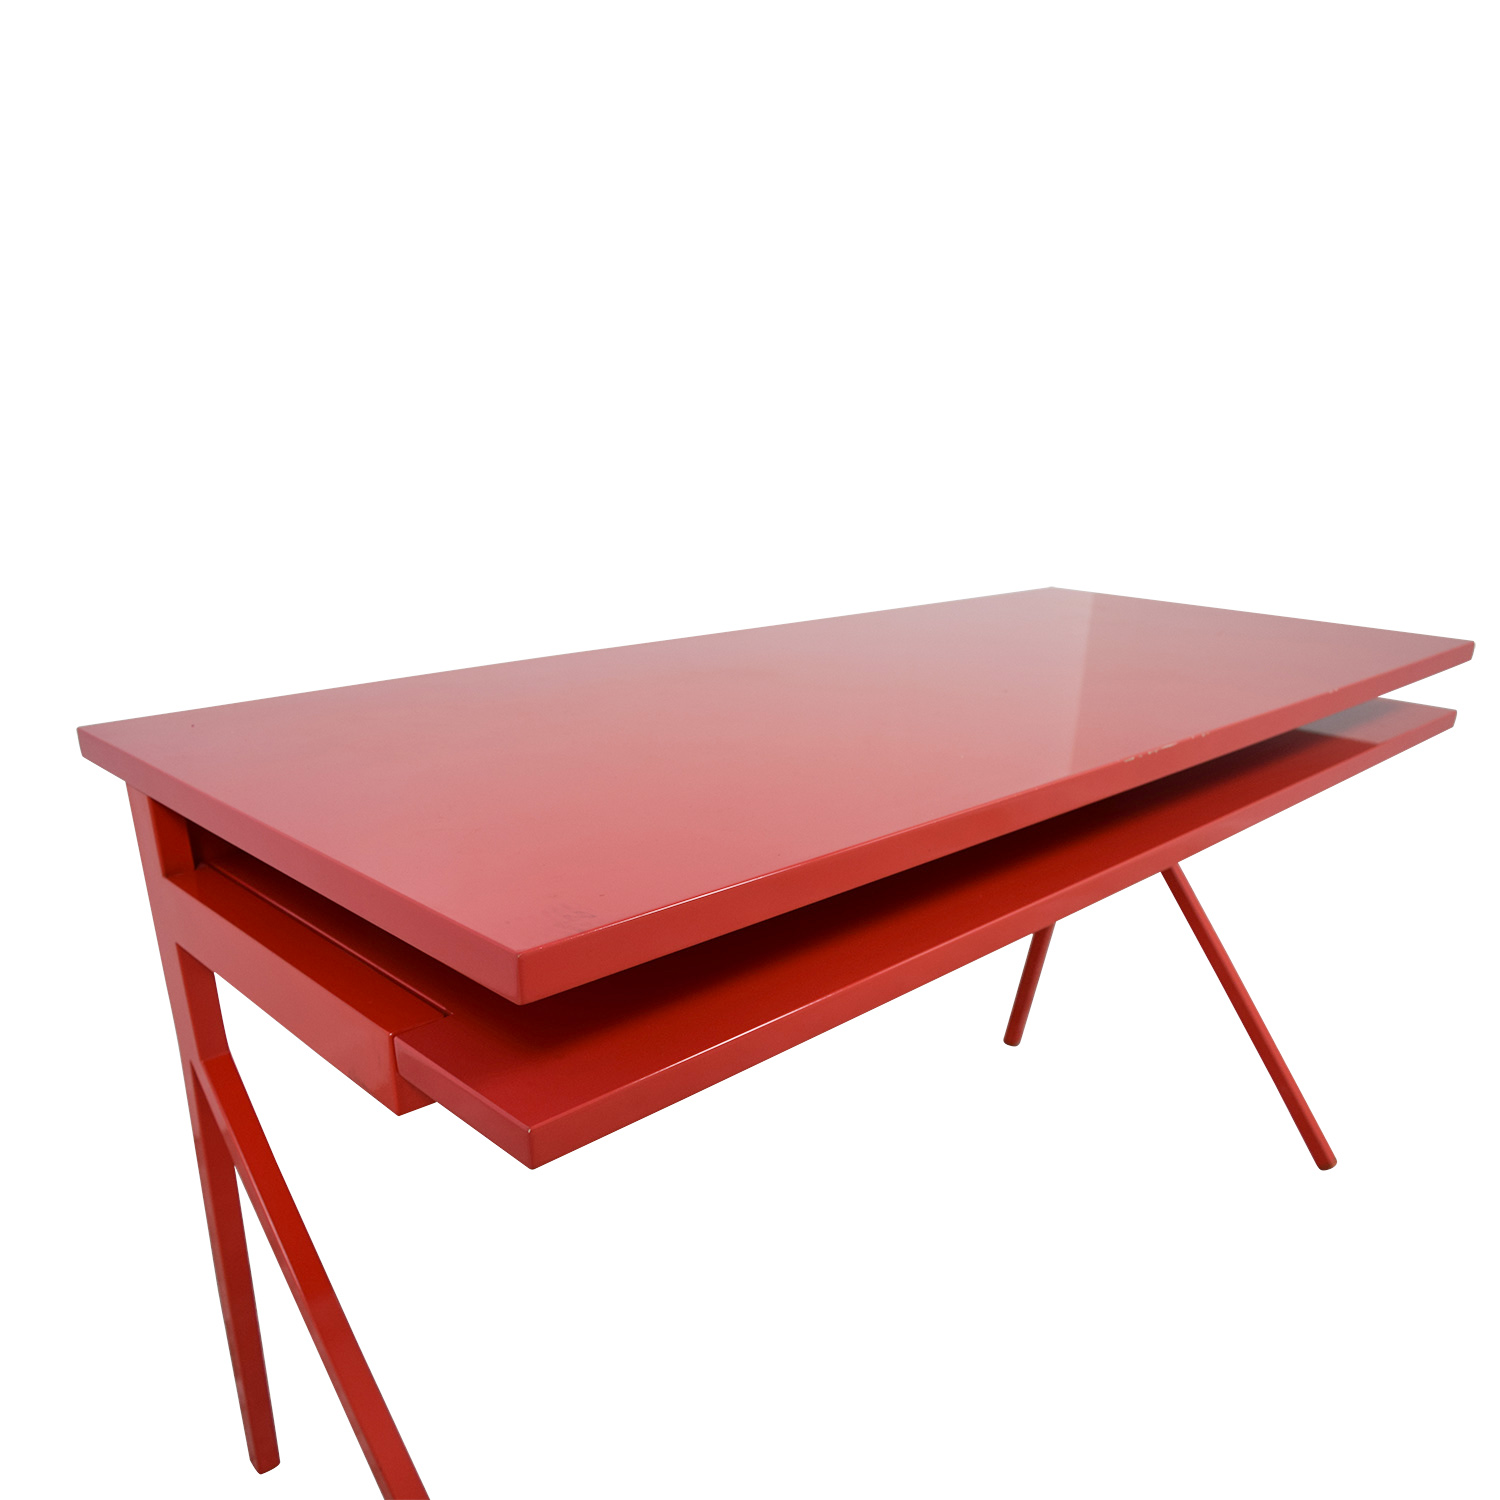 Blu Dot Blu Dot Red Desk 51 red